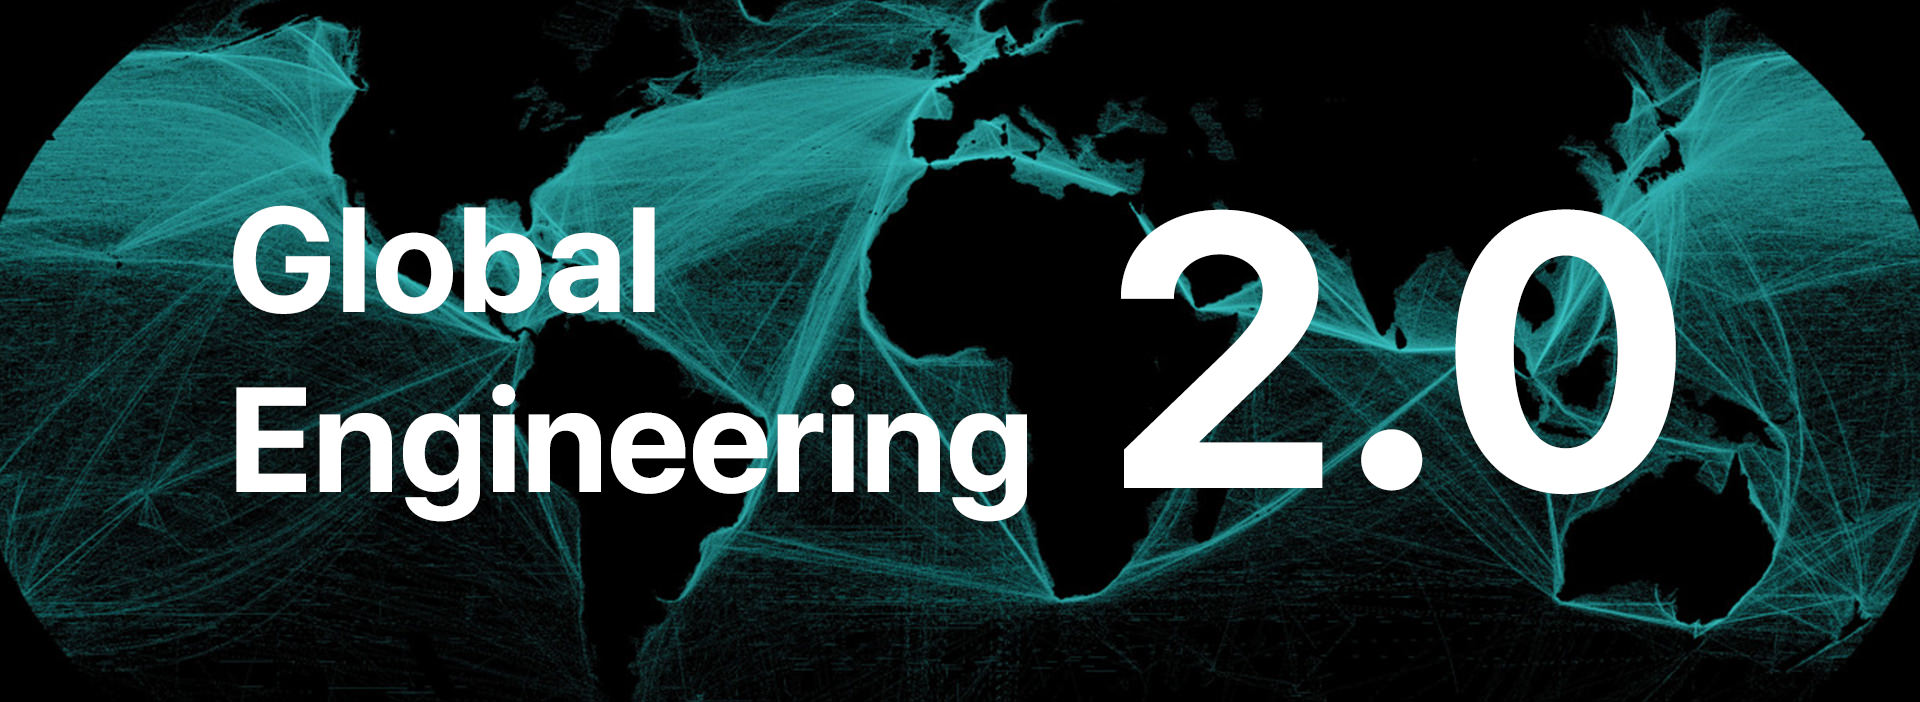 Global Engineering